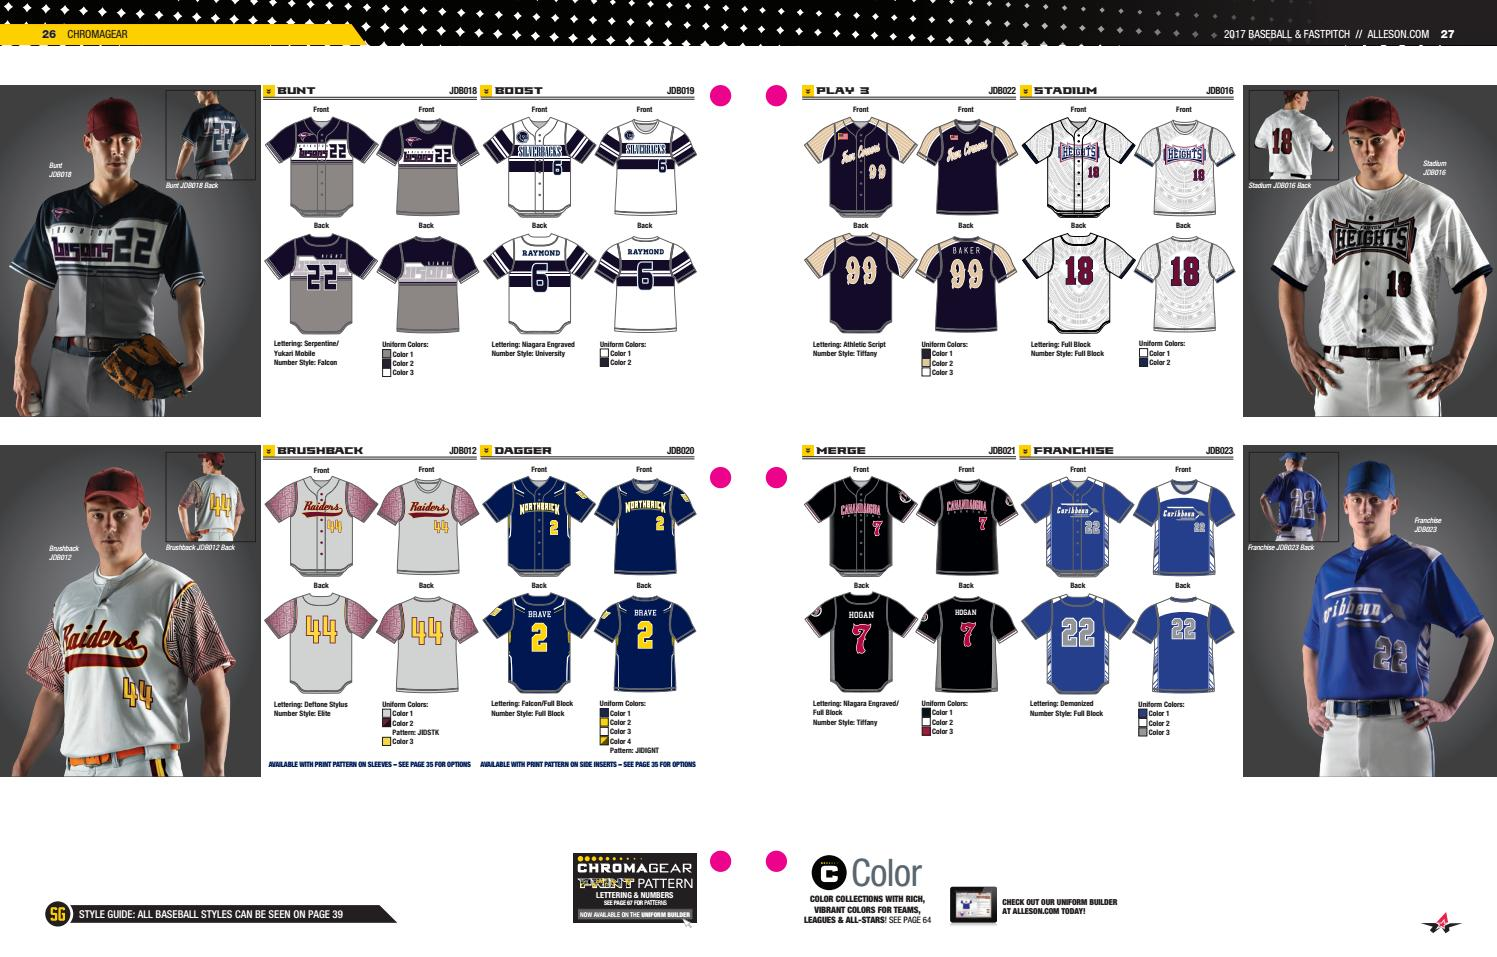 959863b1b73 Alleson Athletic Baseball and Softball Fastpitch Catalog 2017 by LTS -  Legacy Team Sales - issuu